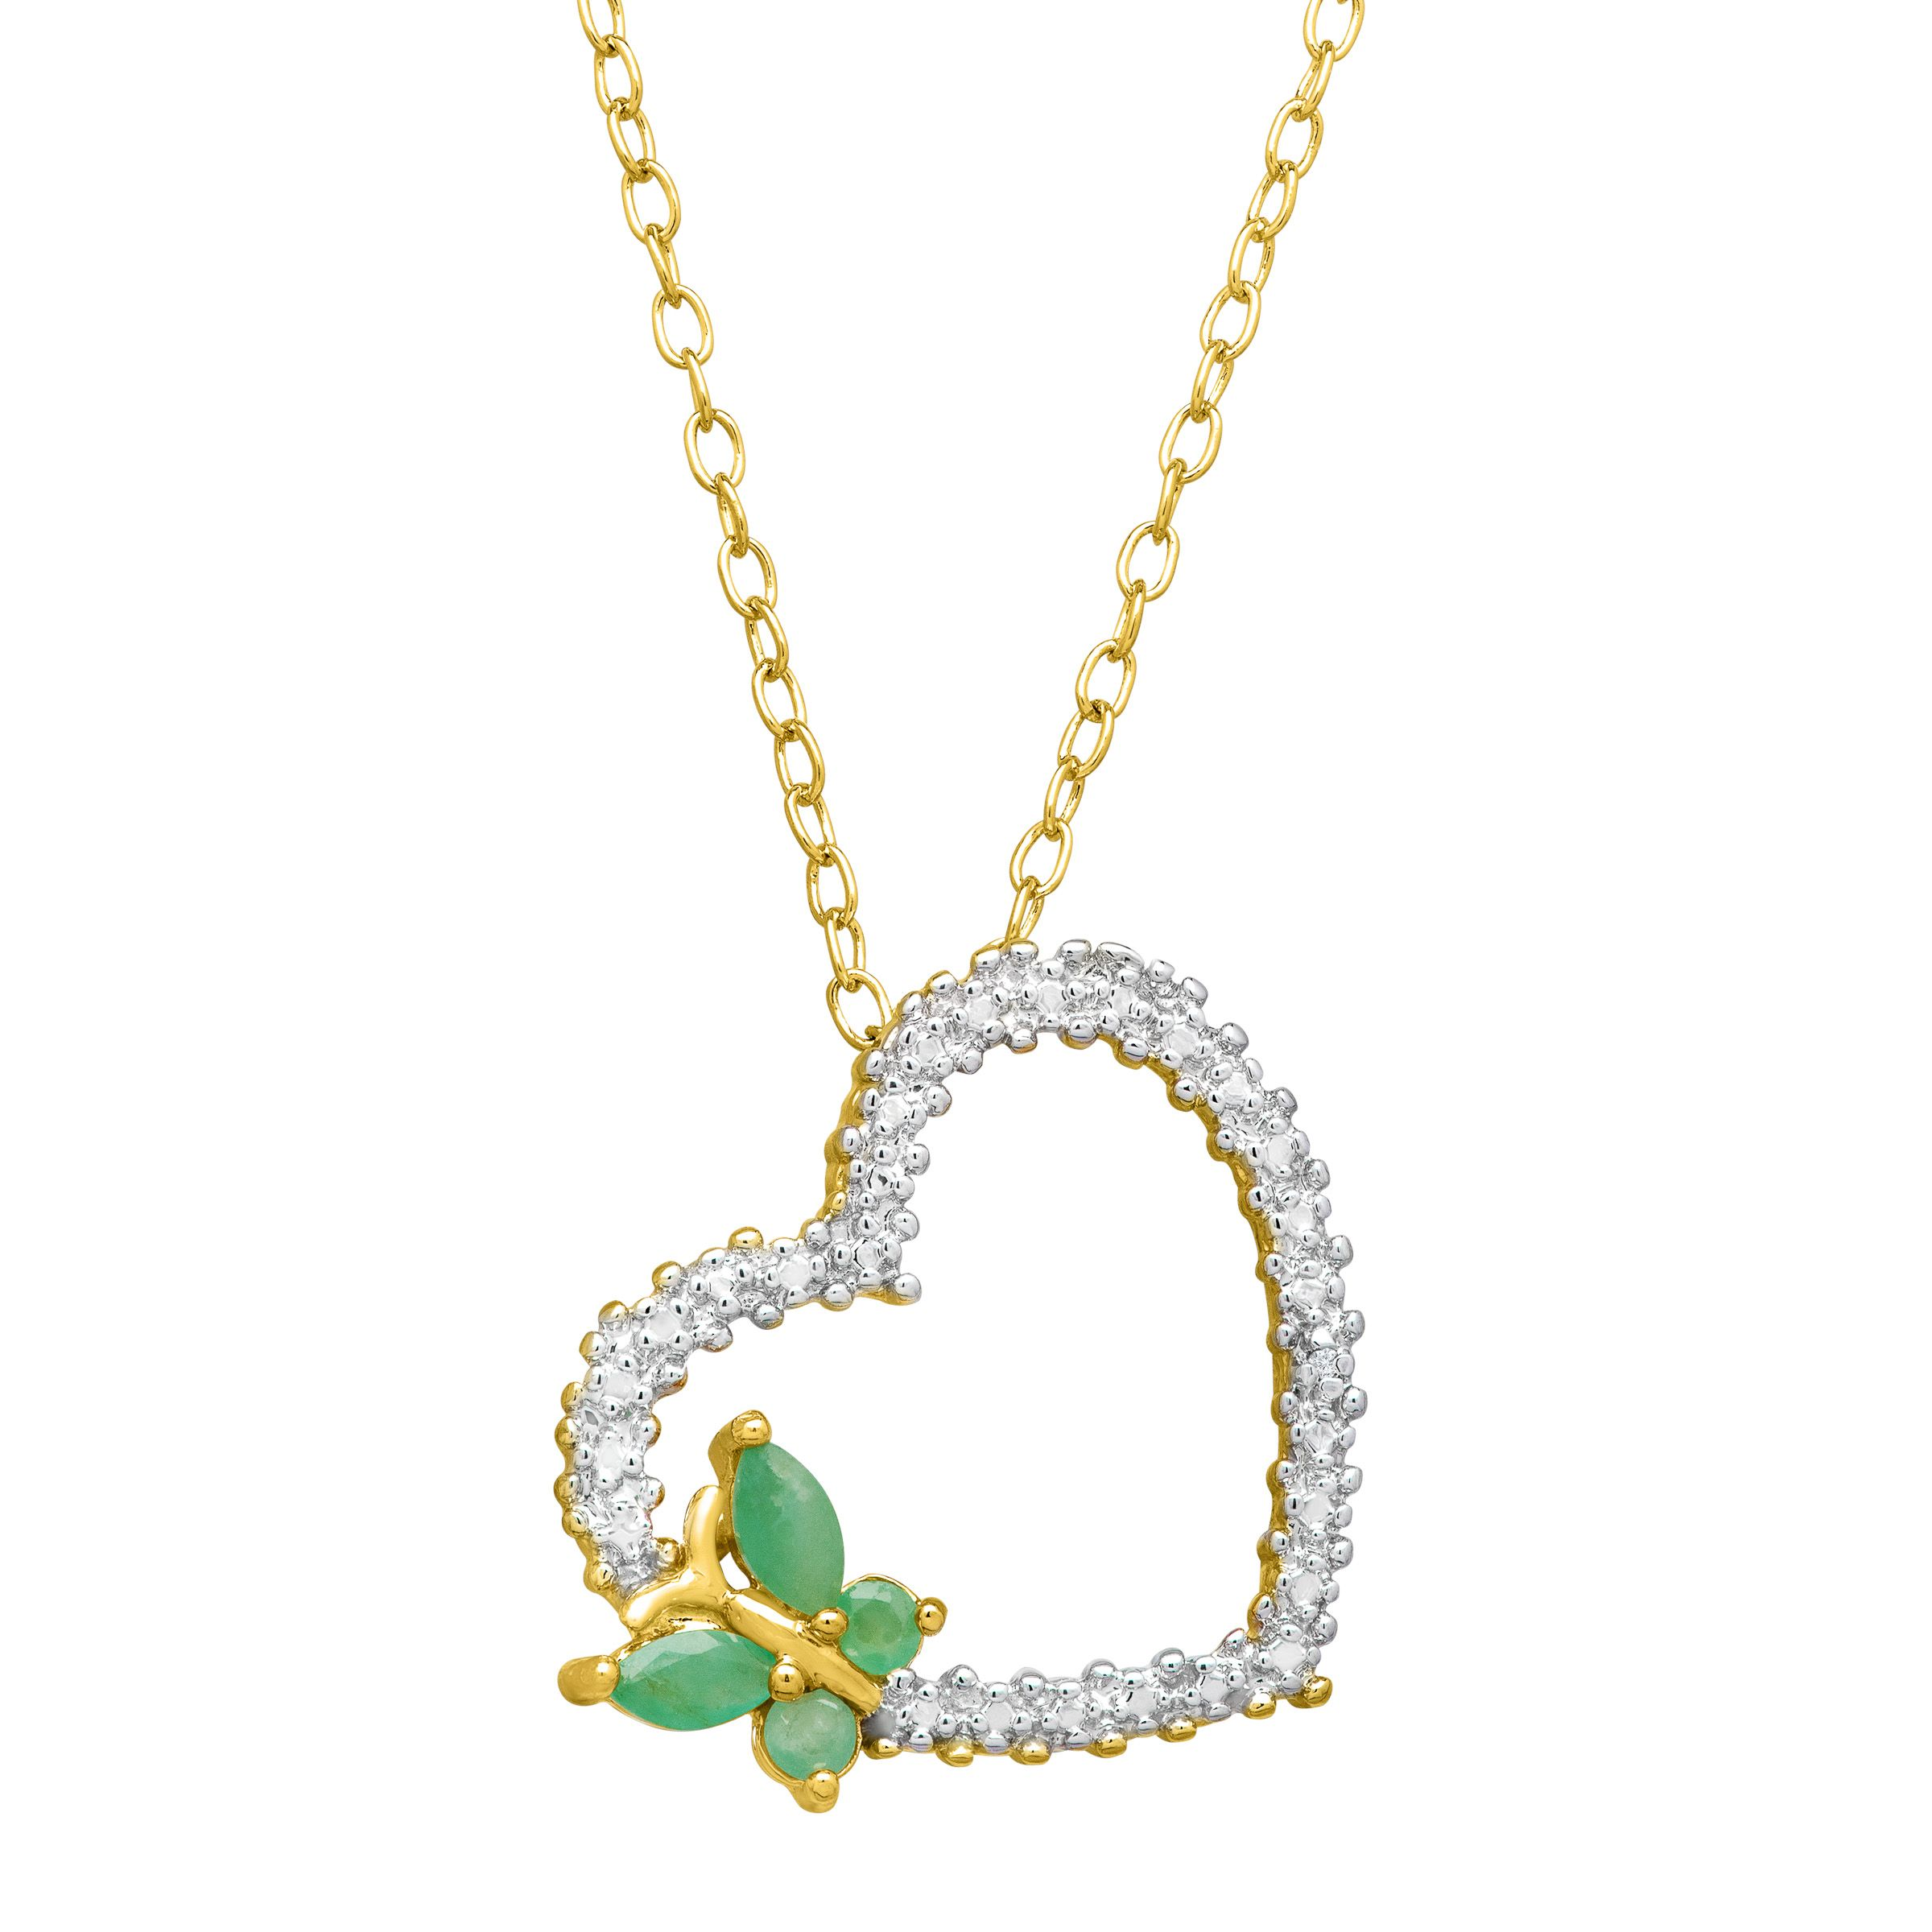 1/3 ct Emerald Butterfly & Heart Pendant Necklace with Diamond in 14K Yellow Gold & Sterling Silver-Plated Brass: Showcasing an emerald…